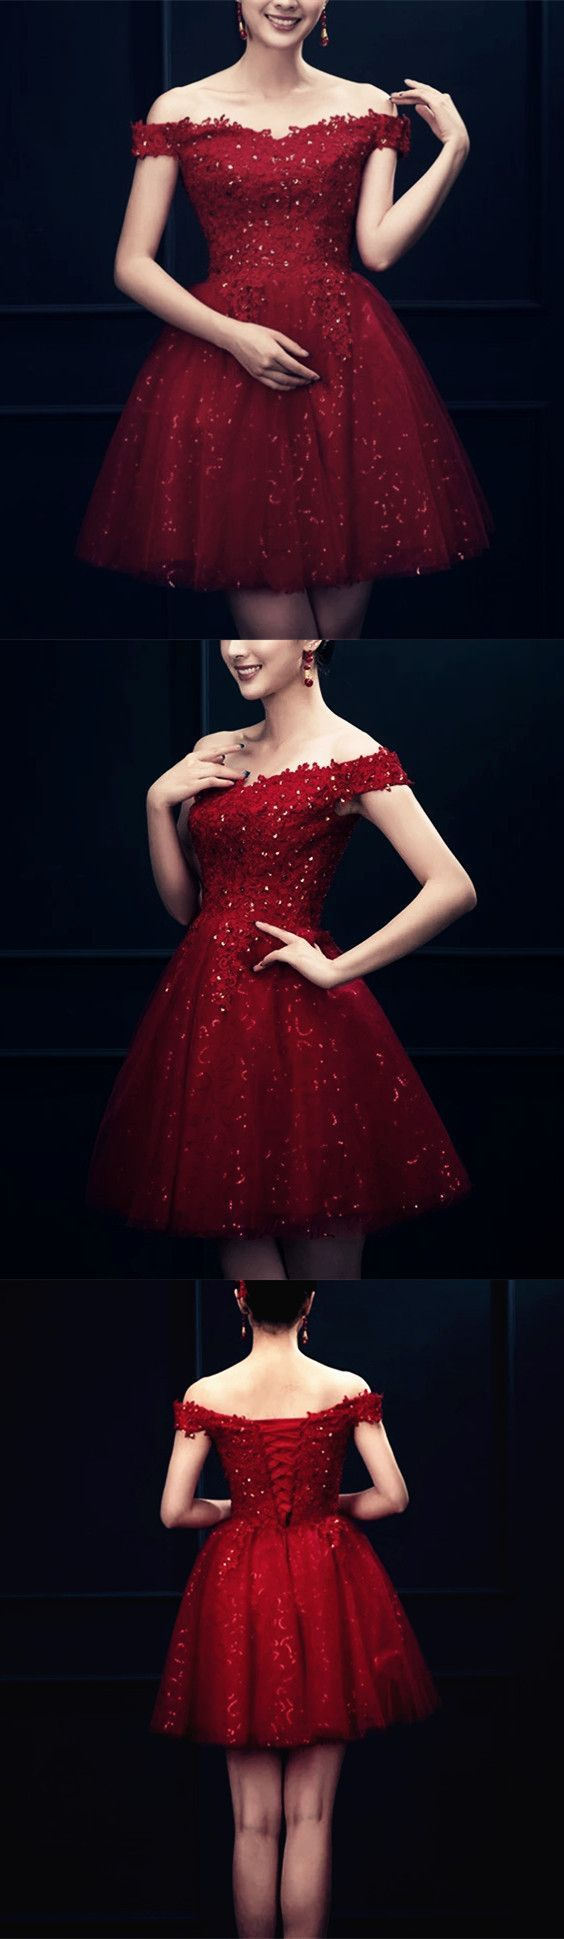 best dresses and skirts images on pinterest